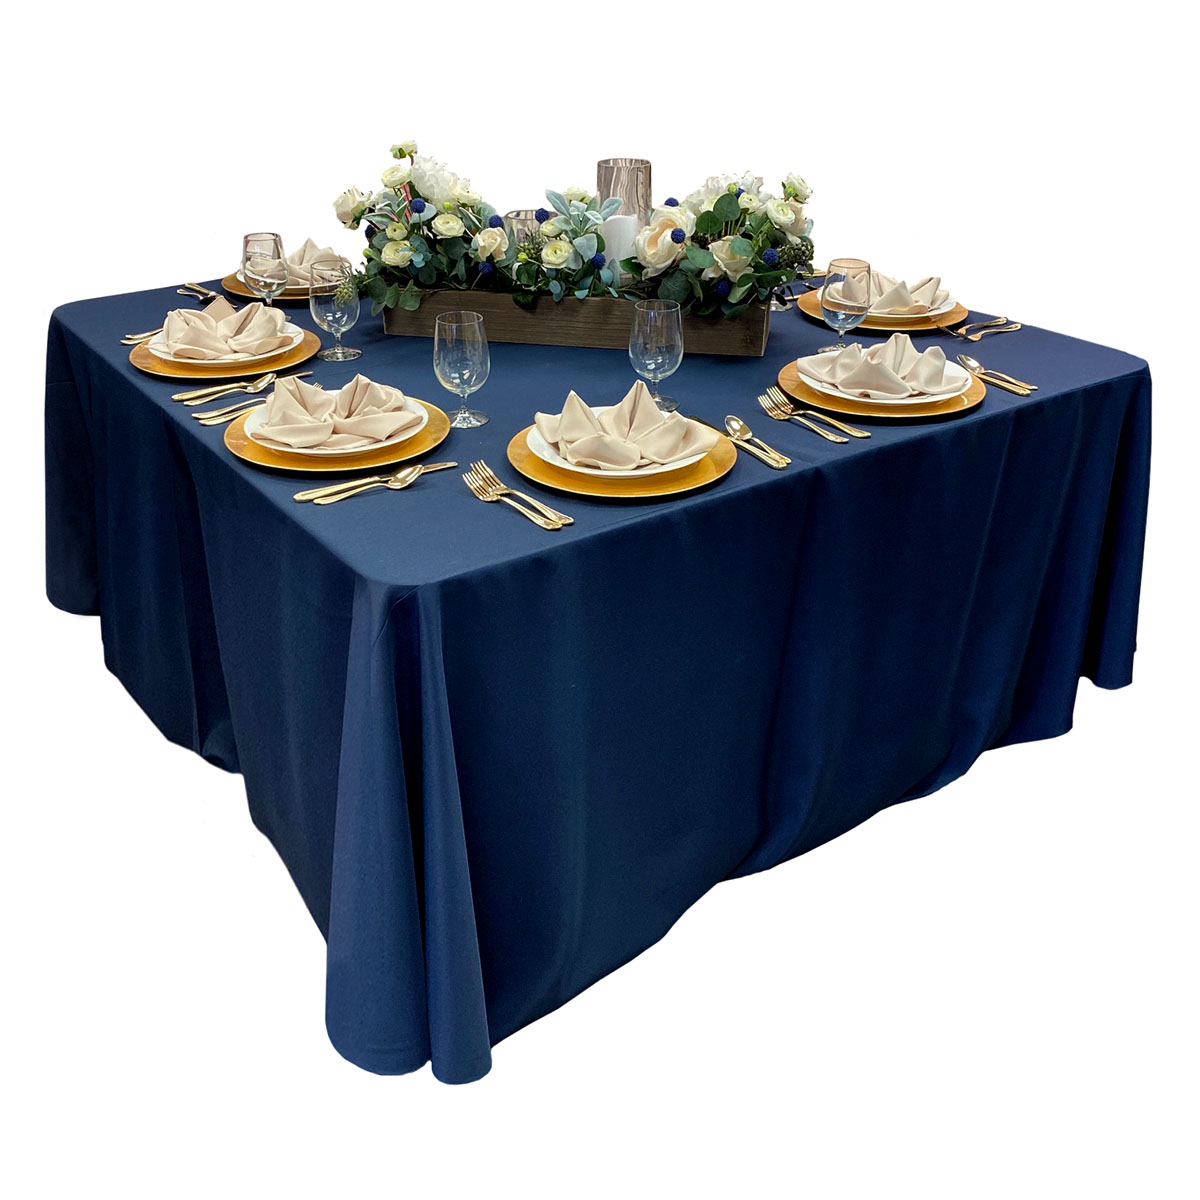 Tablecloths, Napkins & Skirting